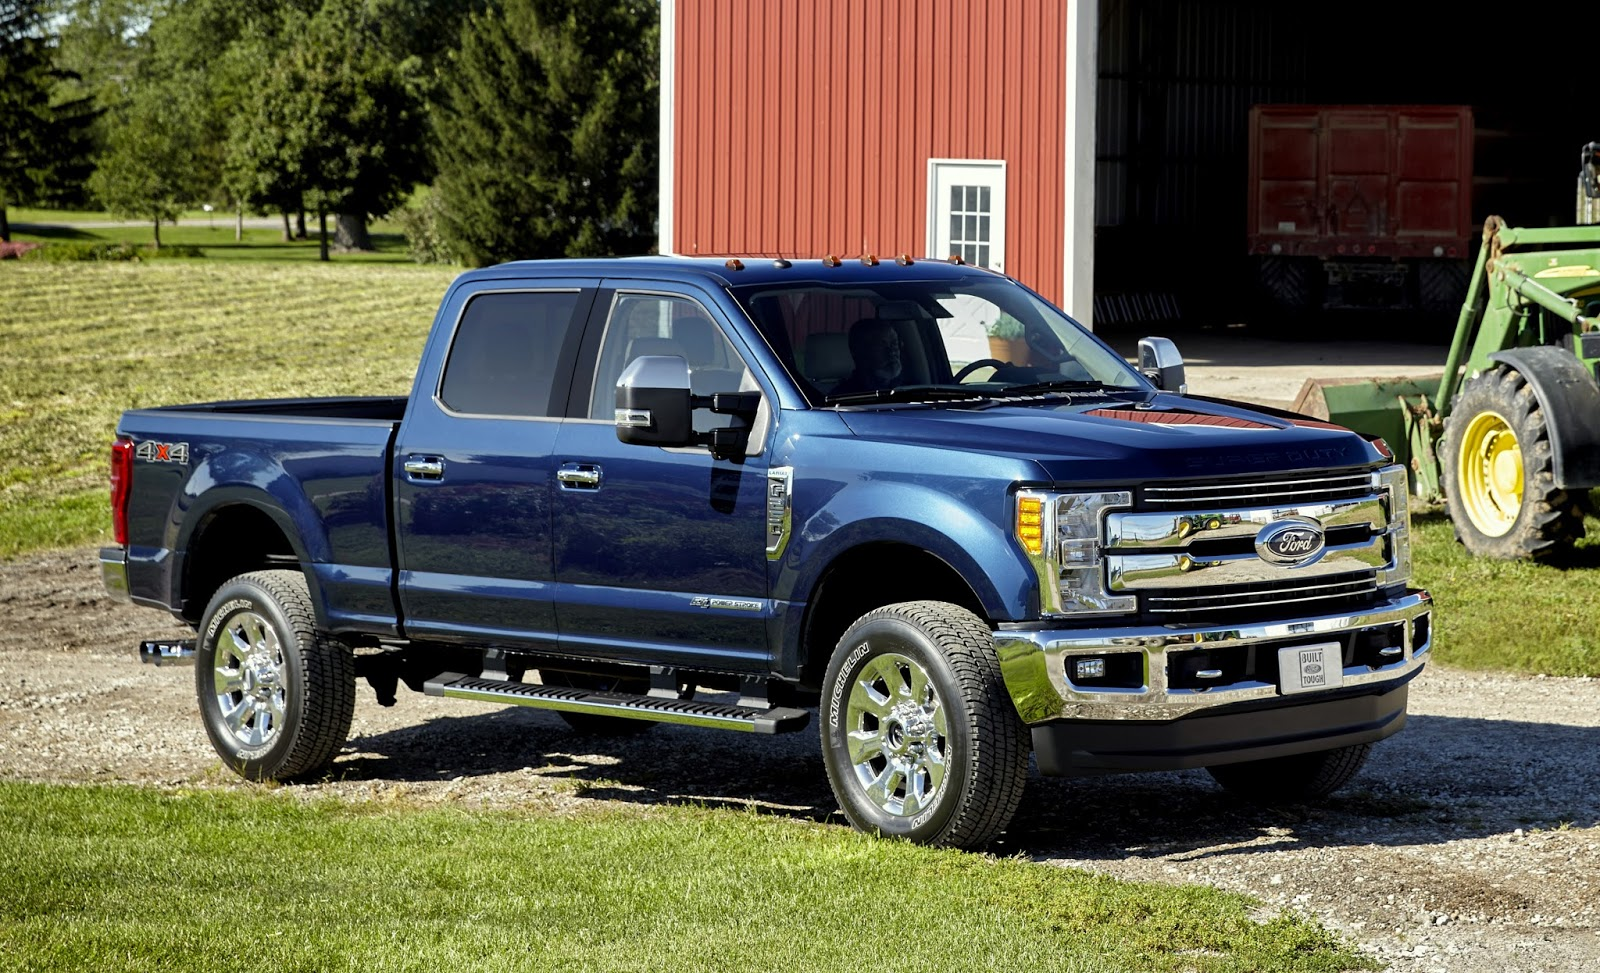 Ford gives a first look at the 2017 f series super duty at the texas state fair w videos